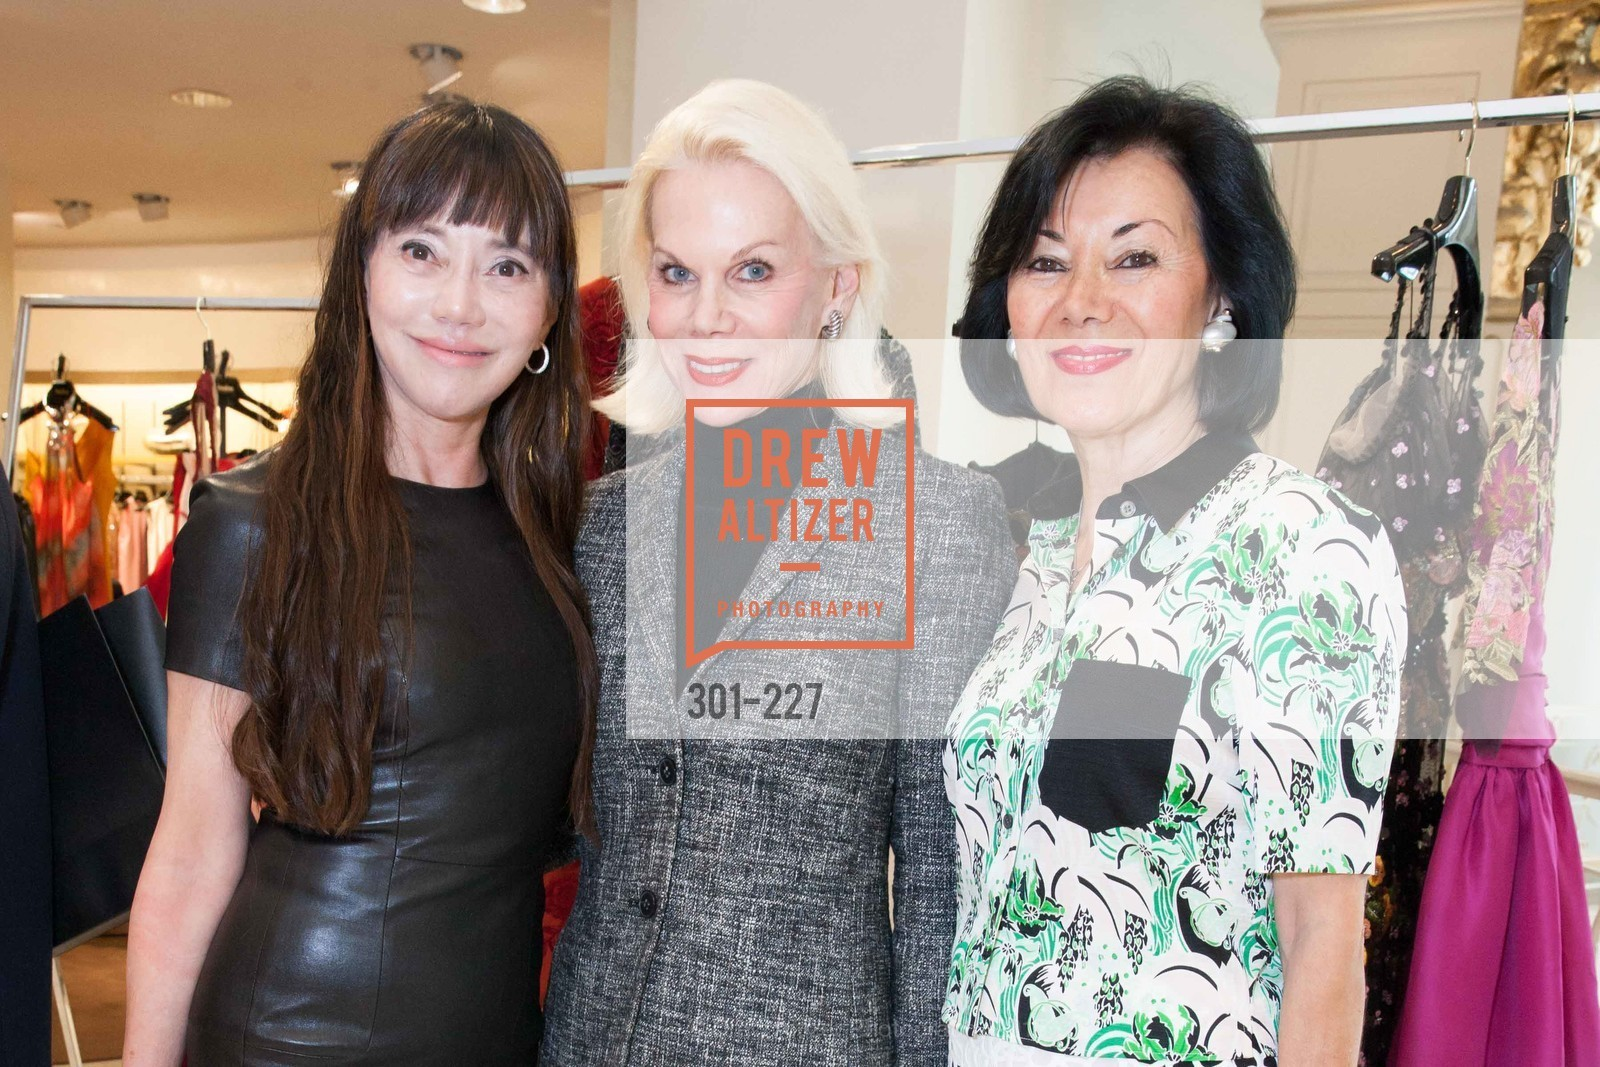 France Szeto, Sandra Farris, Nafiseh Lindberg, Keren Craig Personal Appearance for Marchesa Fall Trunk Show, Neiman Marcus, May 7th, 2015,Drew Altizer, Drew Altizer Photography, full-service agency, private events, San Francisco photographer, photographer california